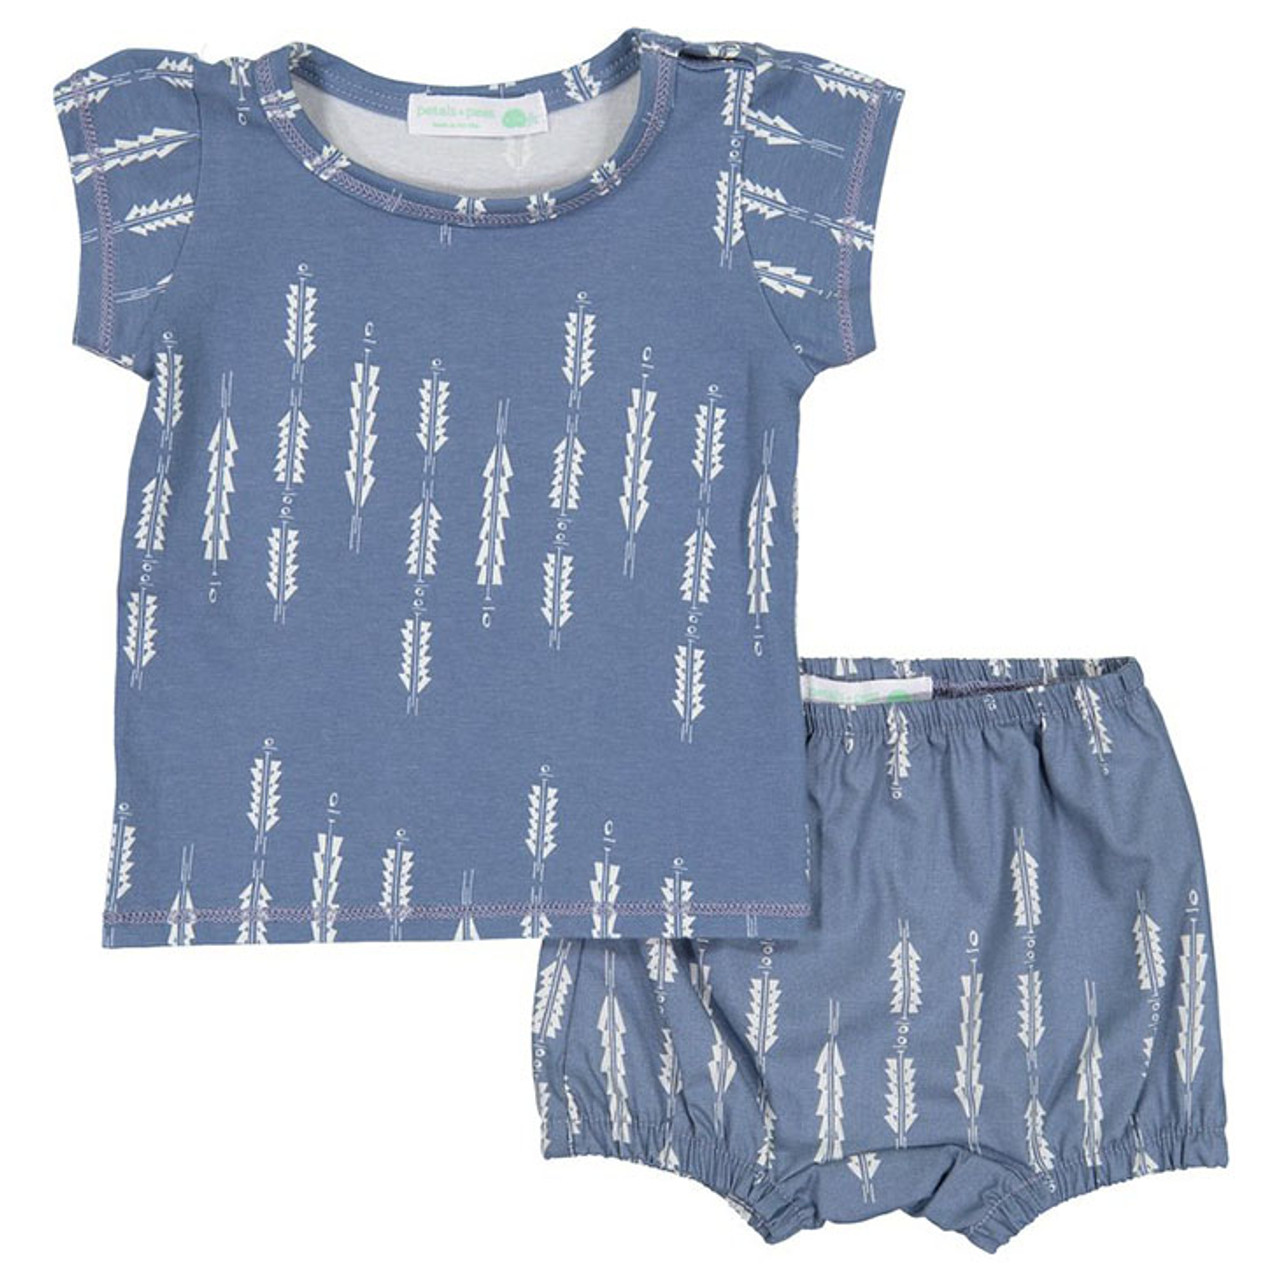 aa20b8100 Shirt & Bloomer Set, Night Sky - Spearmint Ventures, LLC